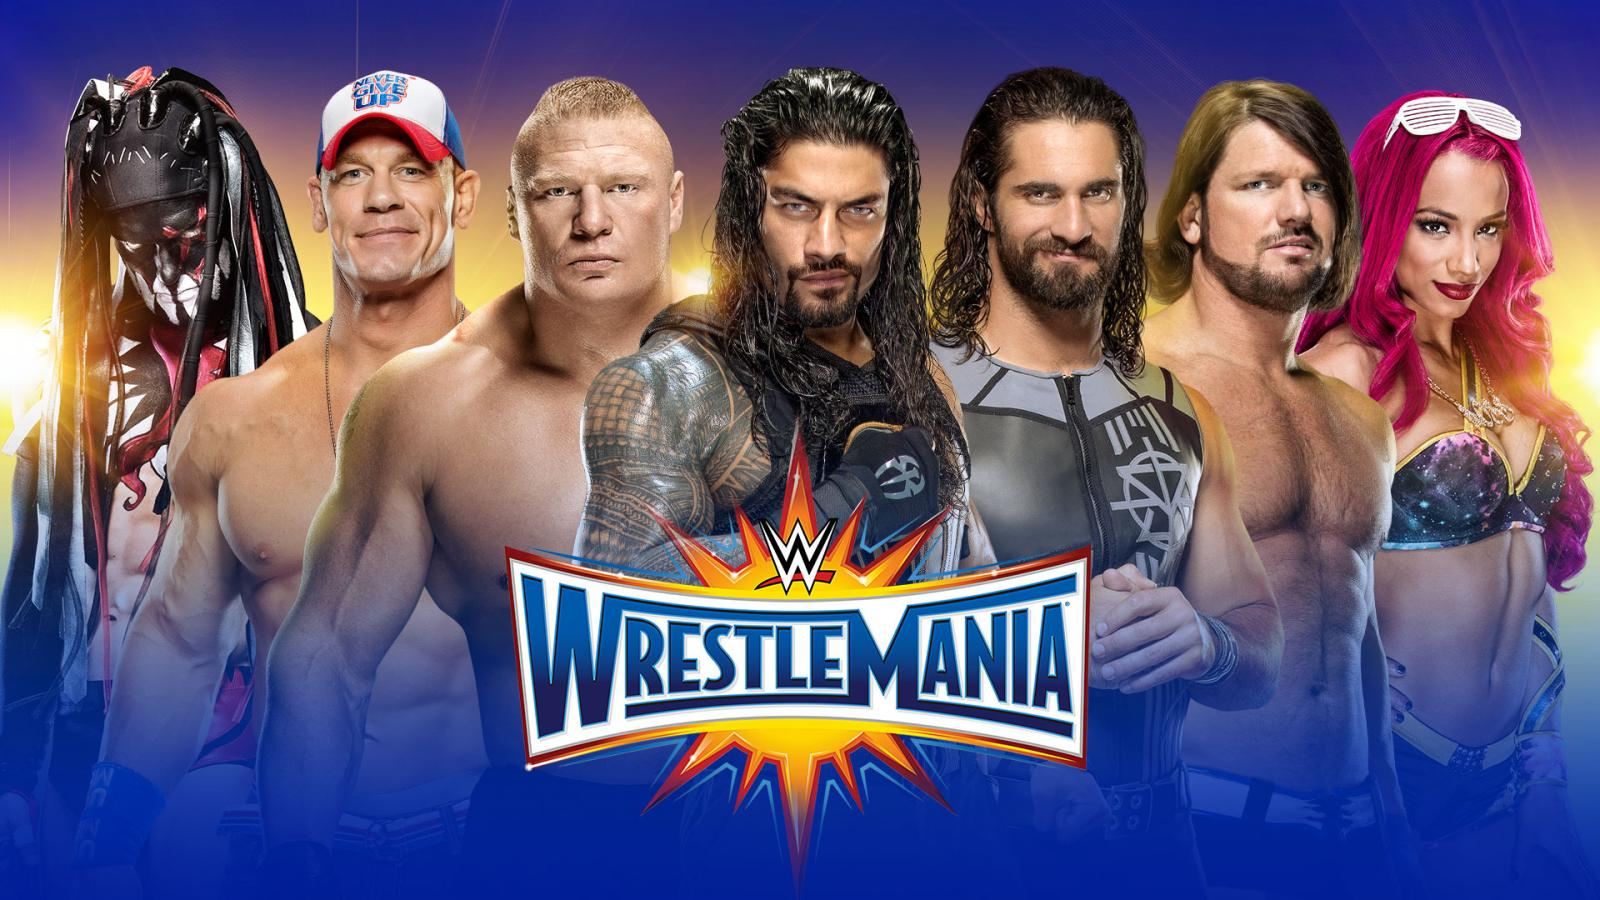 wwes wrestlemania 33 poster overreacting to and